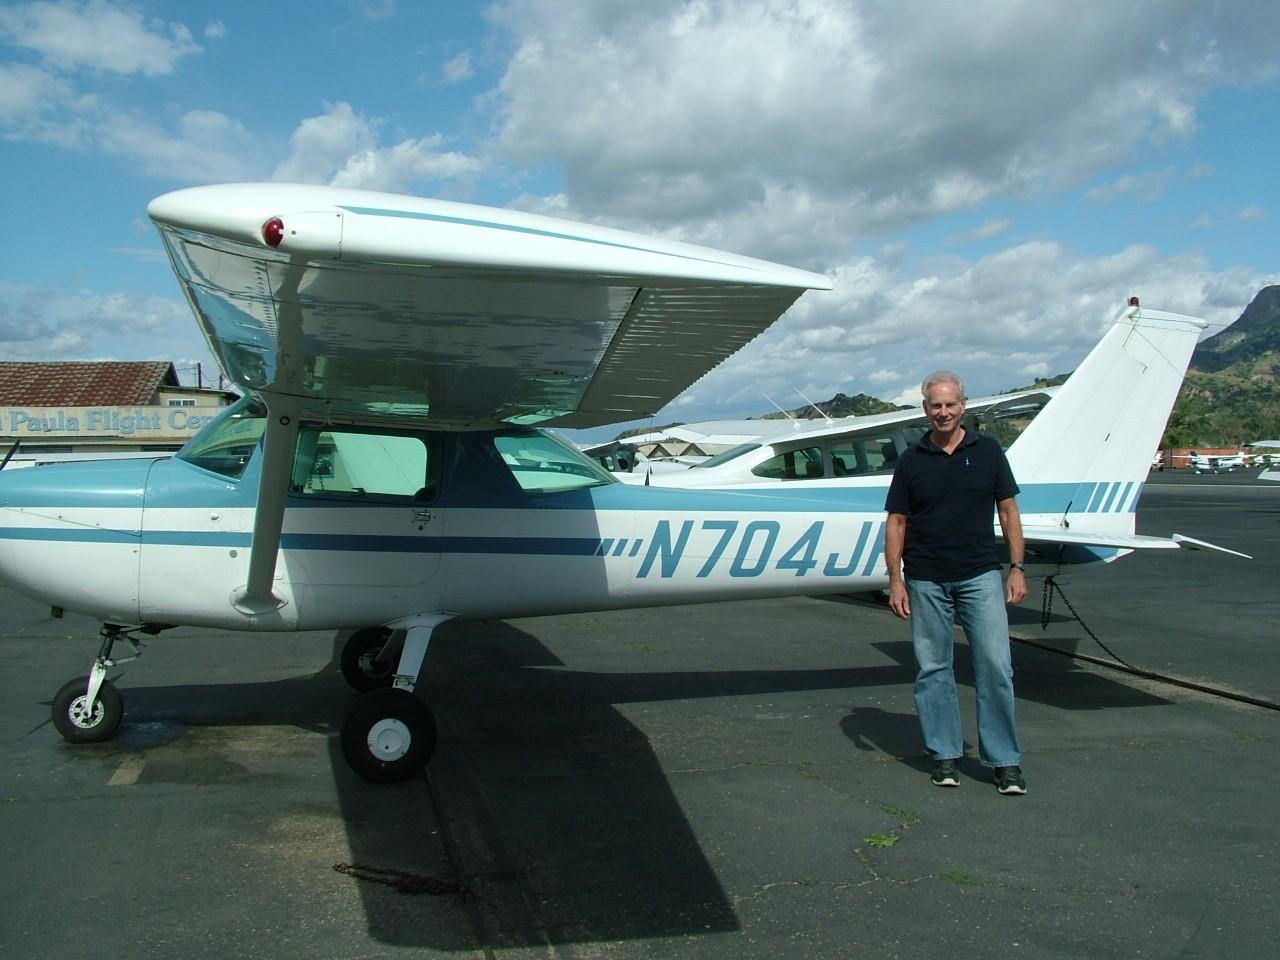 Private Pilot - Mark McCamish